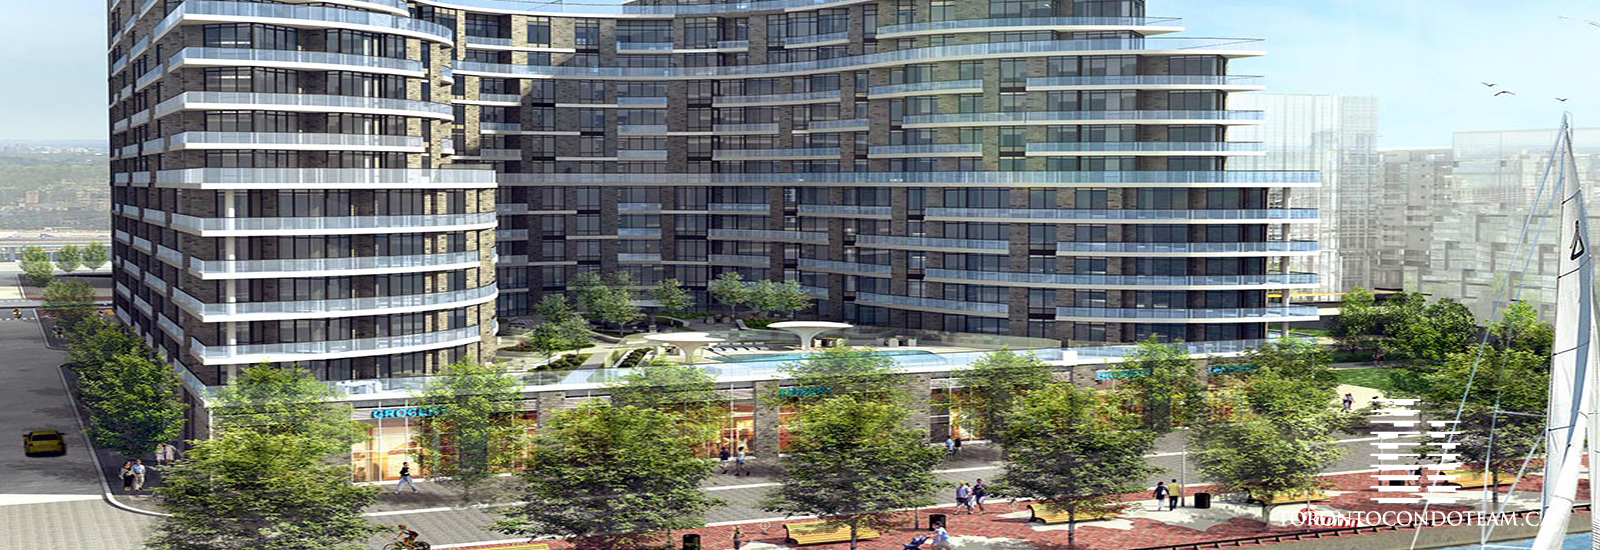 261 Queens Quay East Condos For Sale